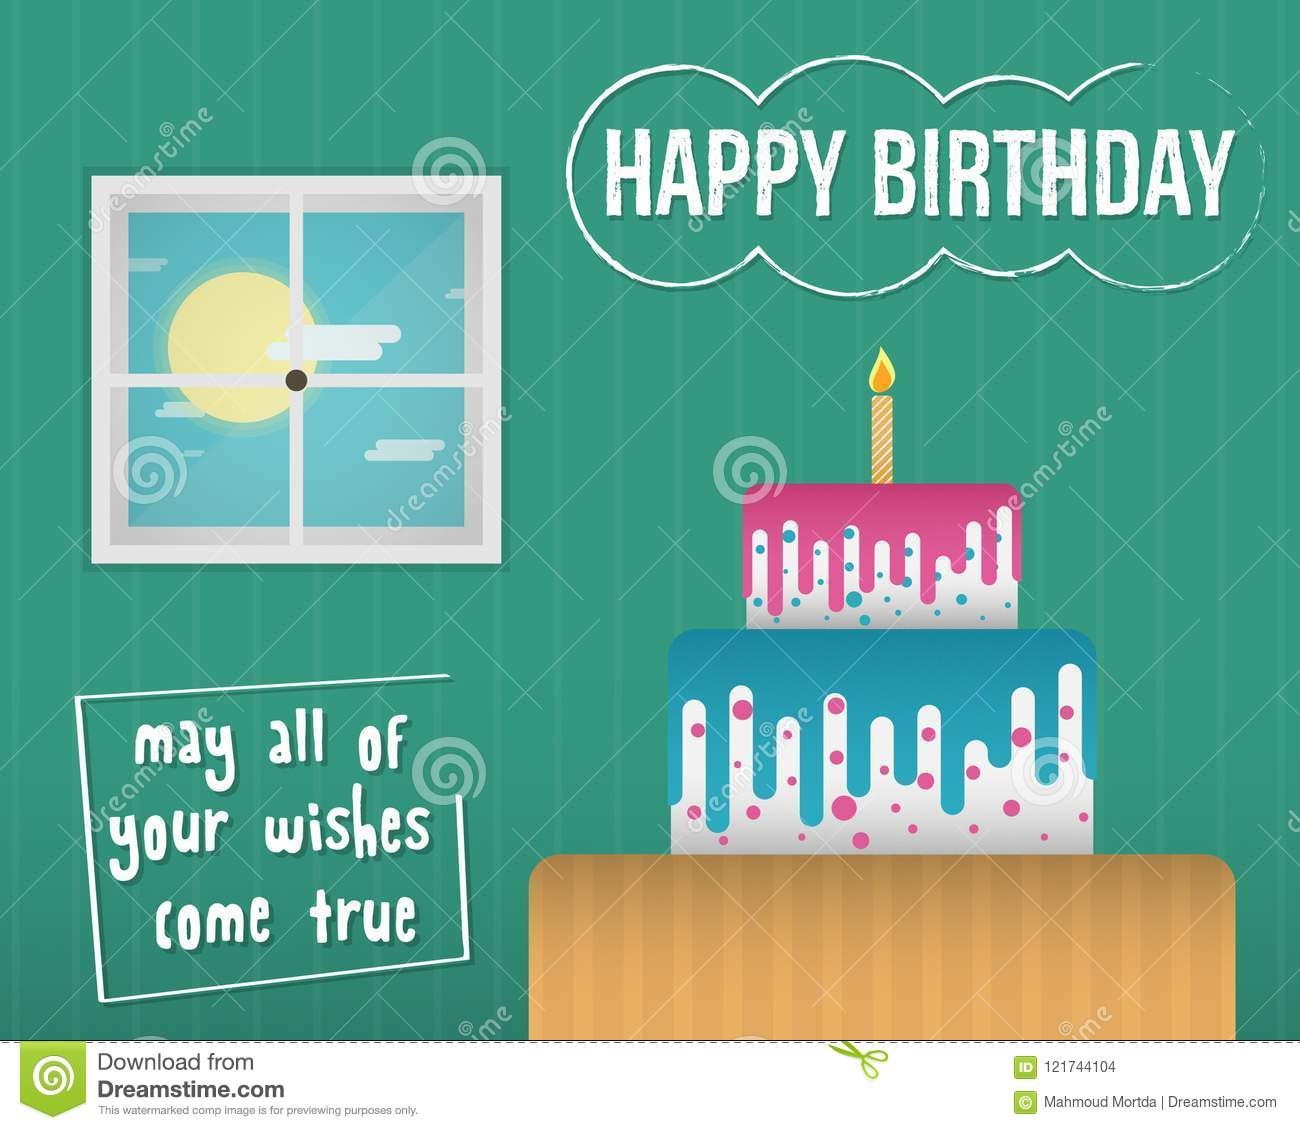 A Colorful And Quality Happy Birthday Ecard Illustration